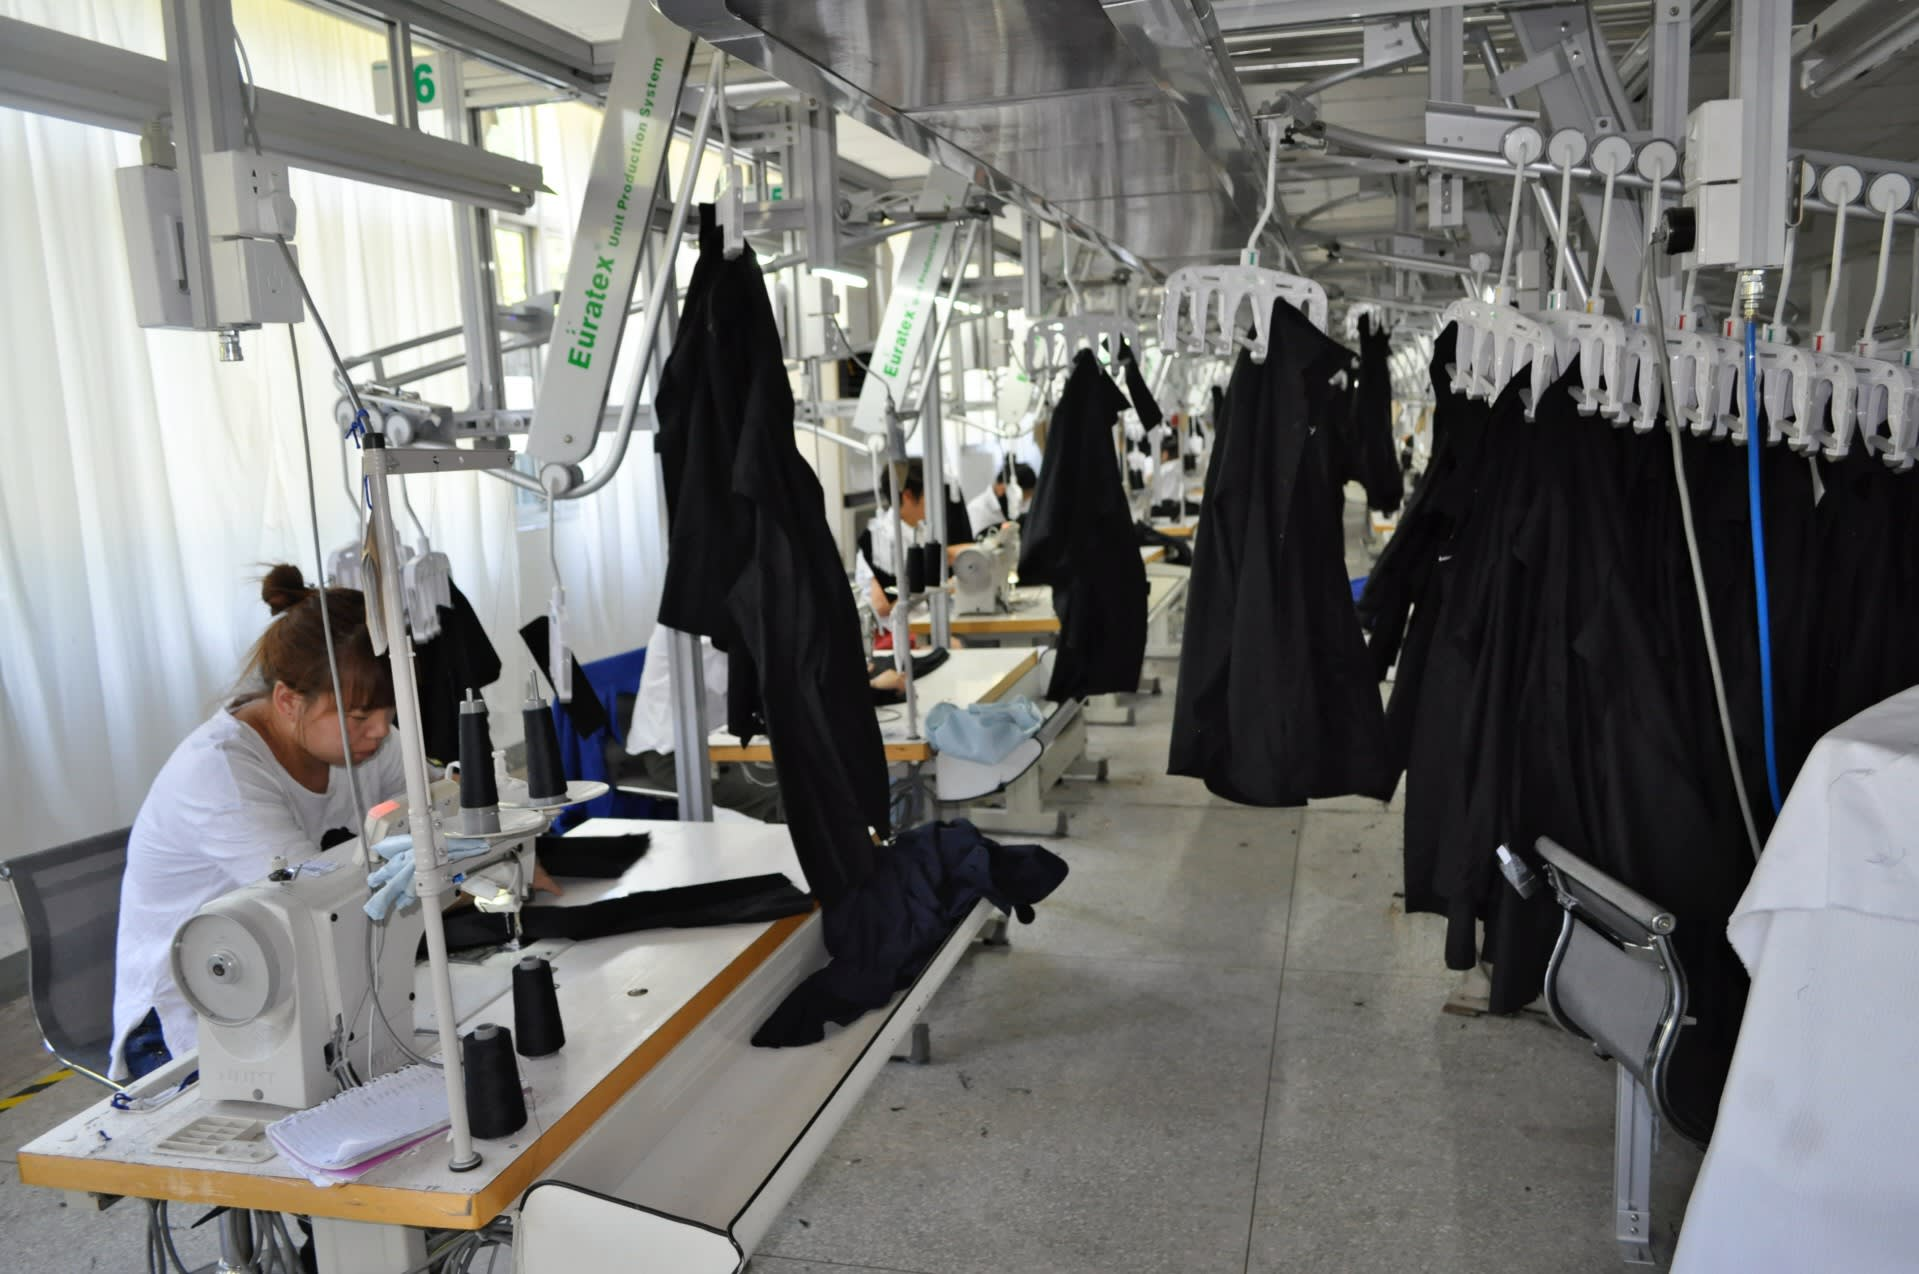 clothing manufacturers overseas local clothing manufacturers